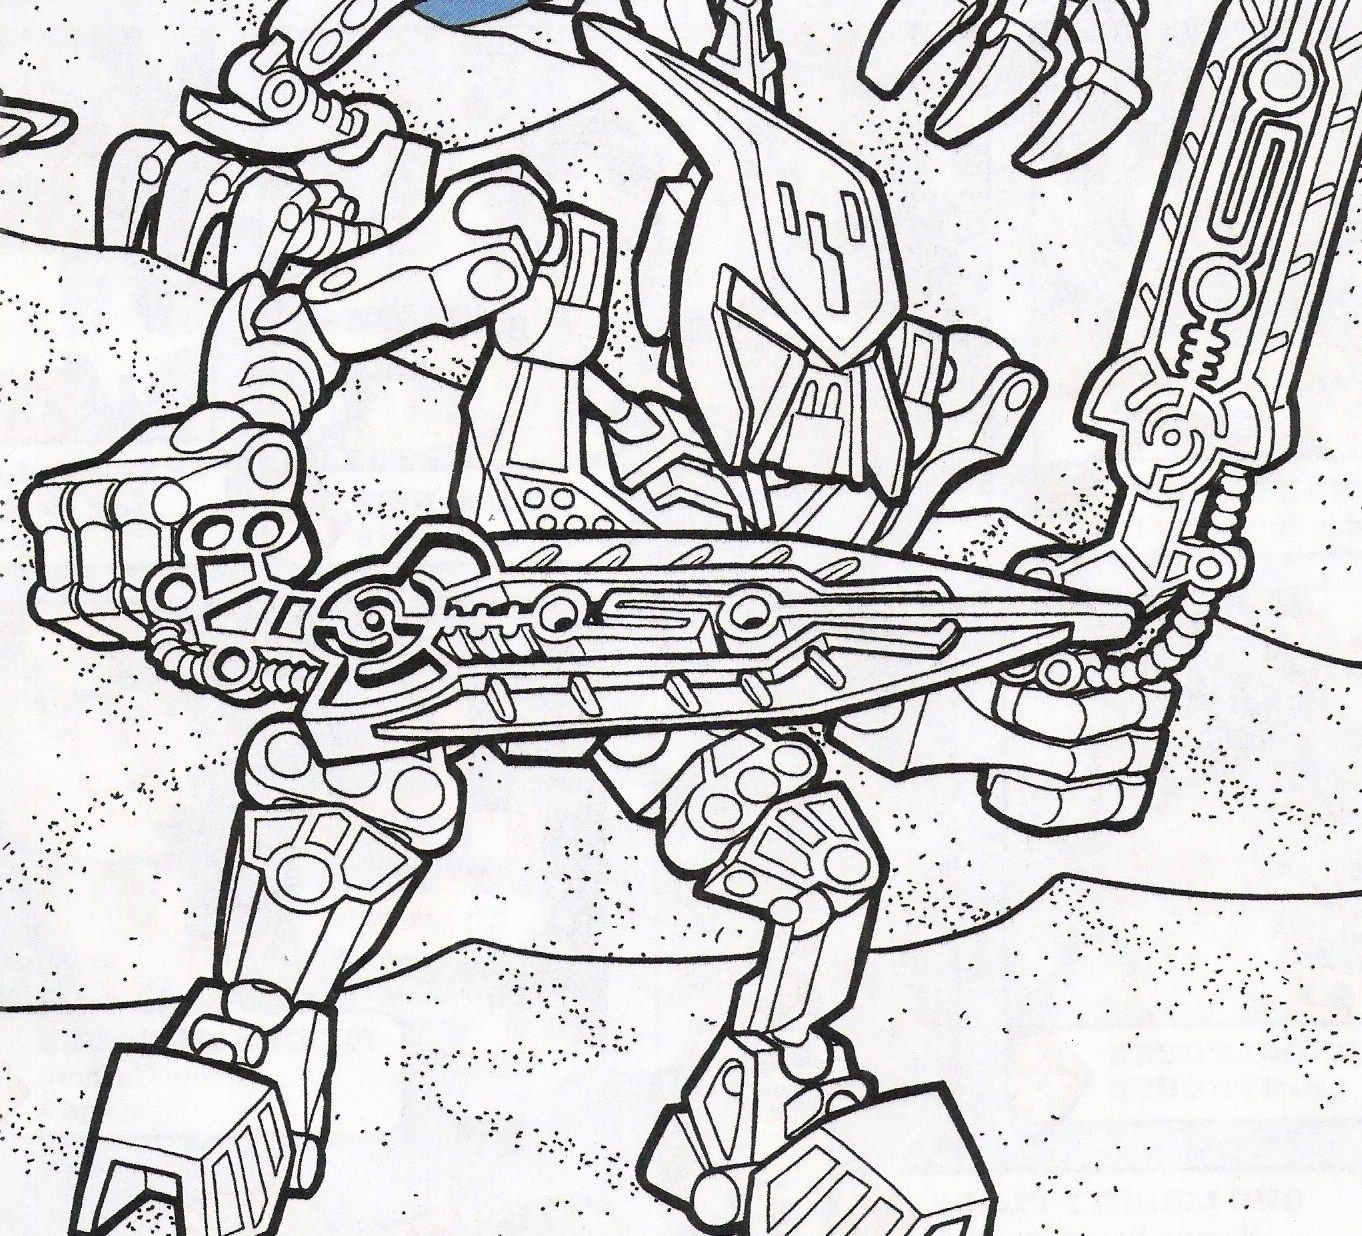 lego bionicle coloring page - coloring home - Bionicle Coloring Pages Printable